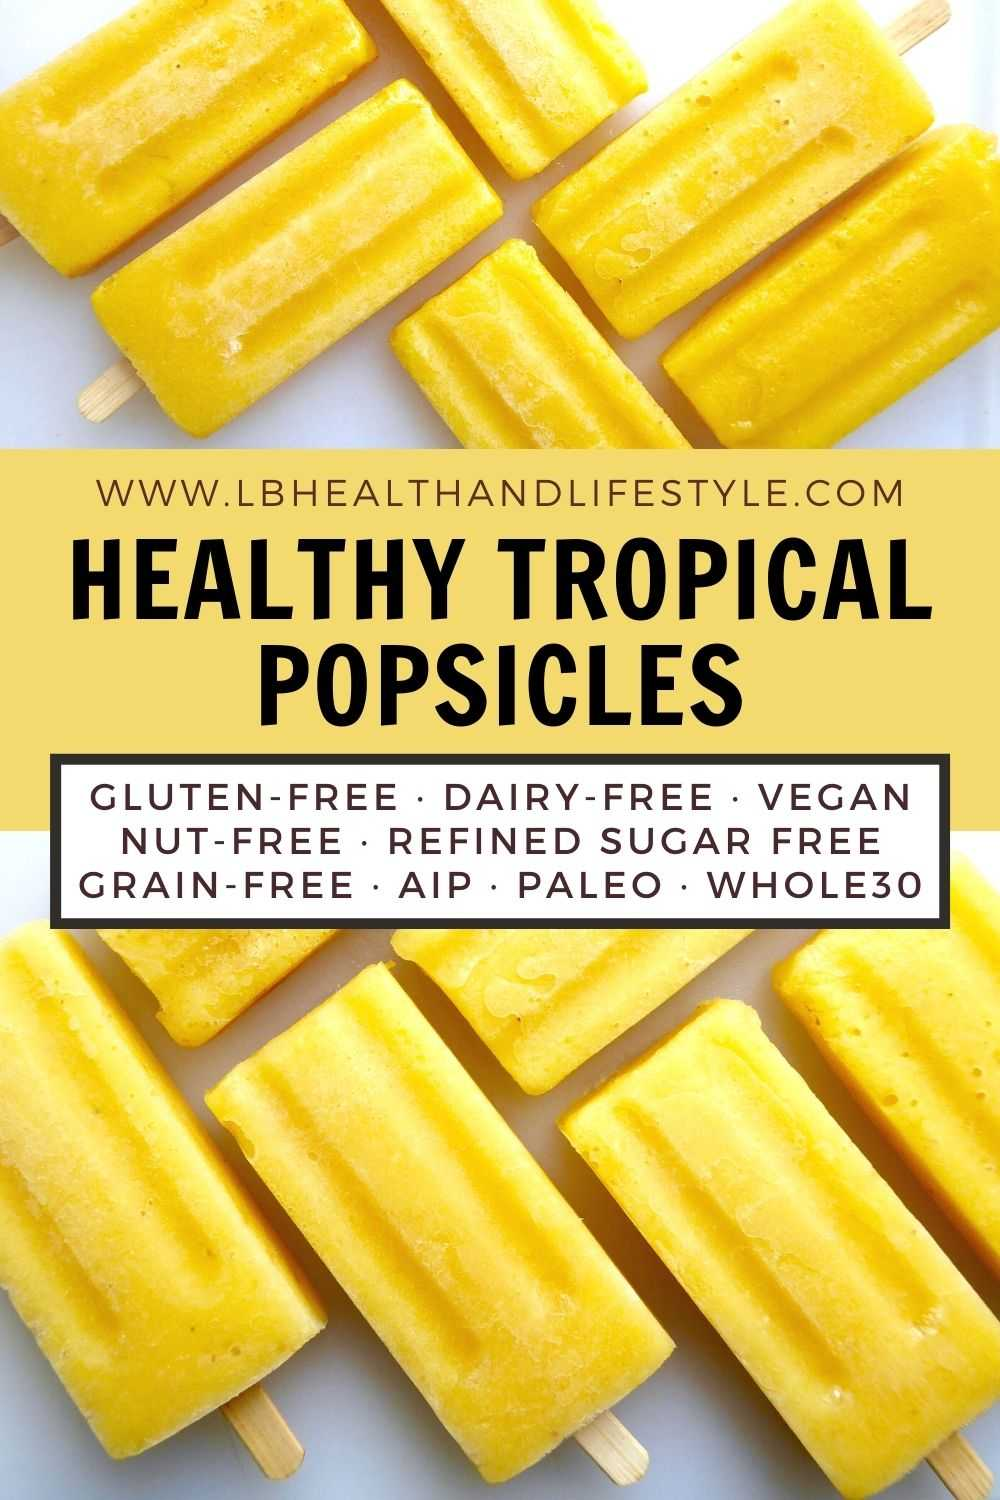 Healthy Popsicles/Ice Lollies – Tropical Fruit